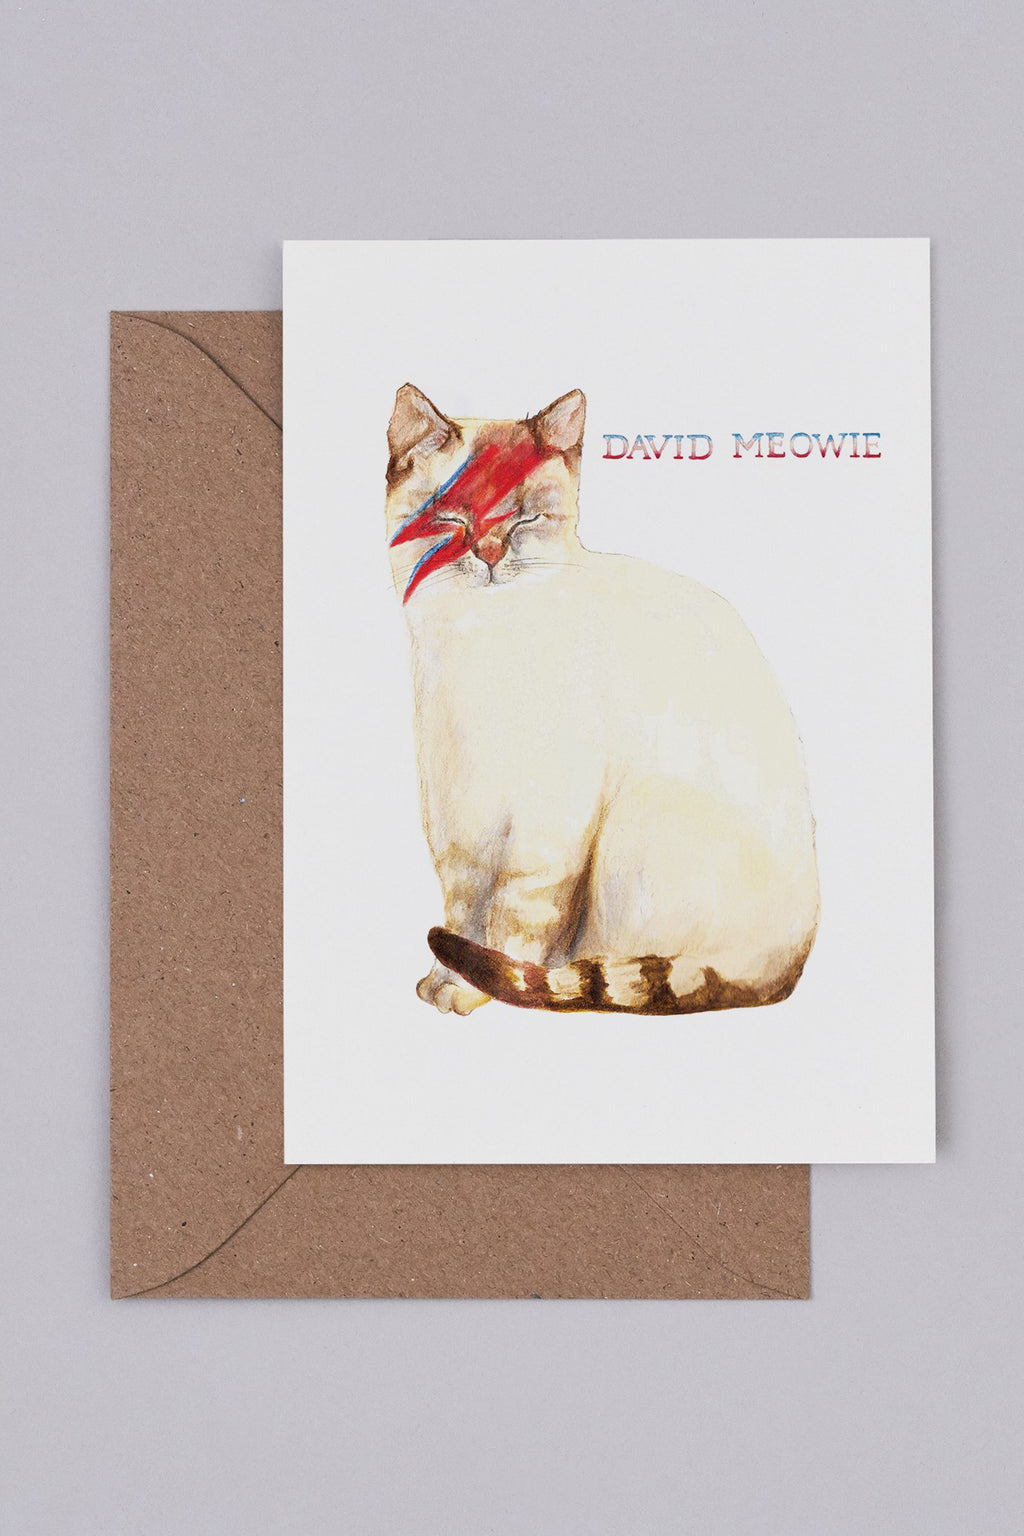 Mister Peebles David Meowie Card - The Mercantile London